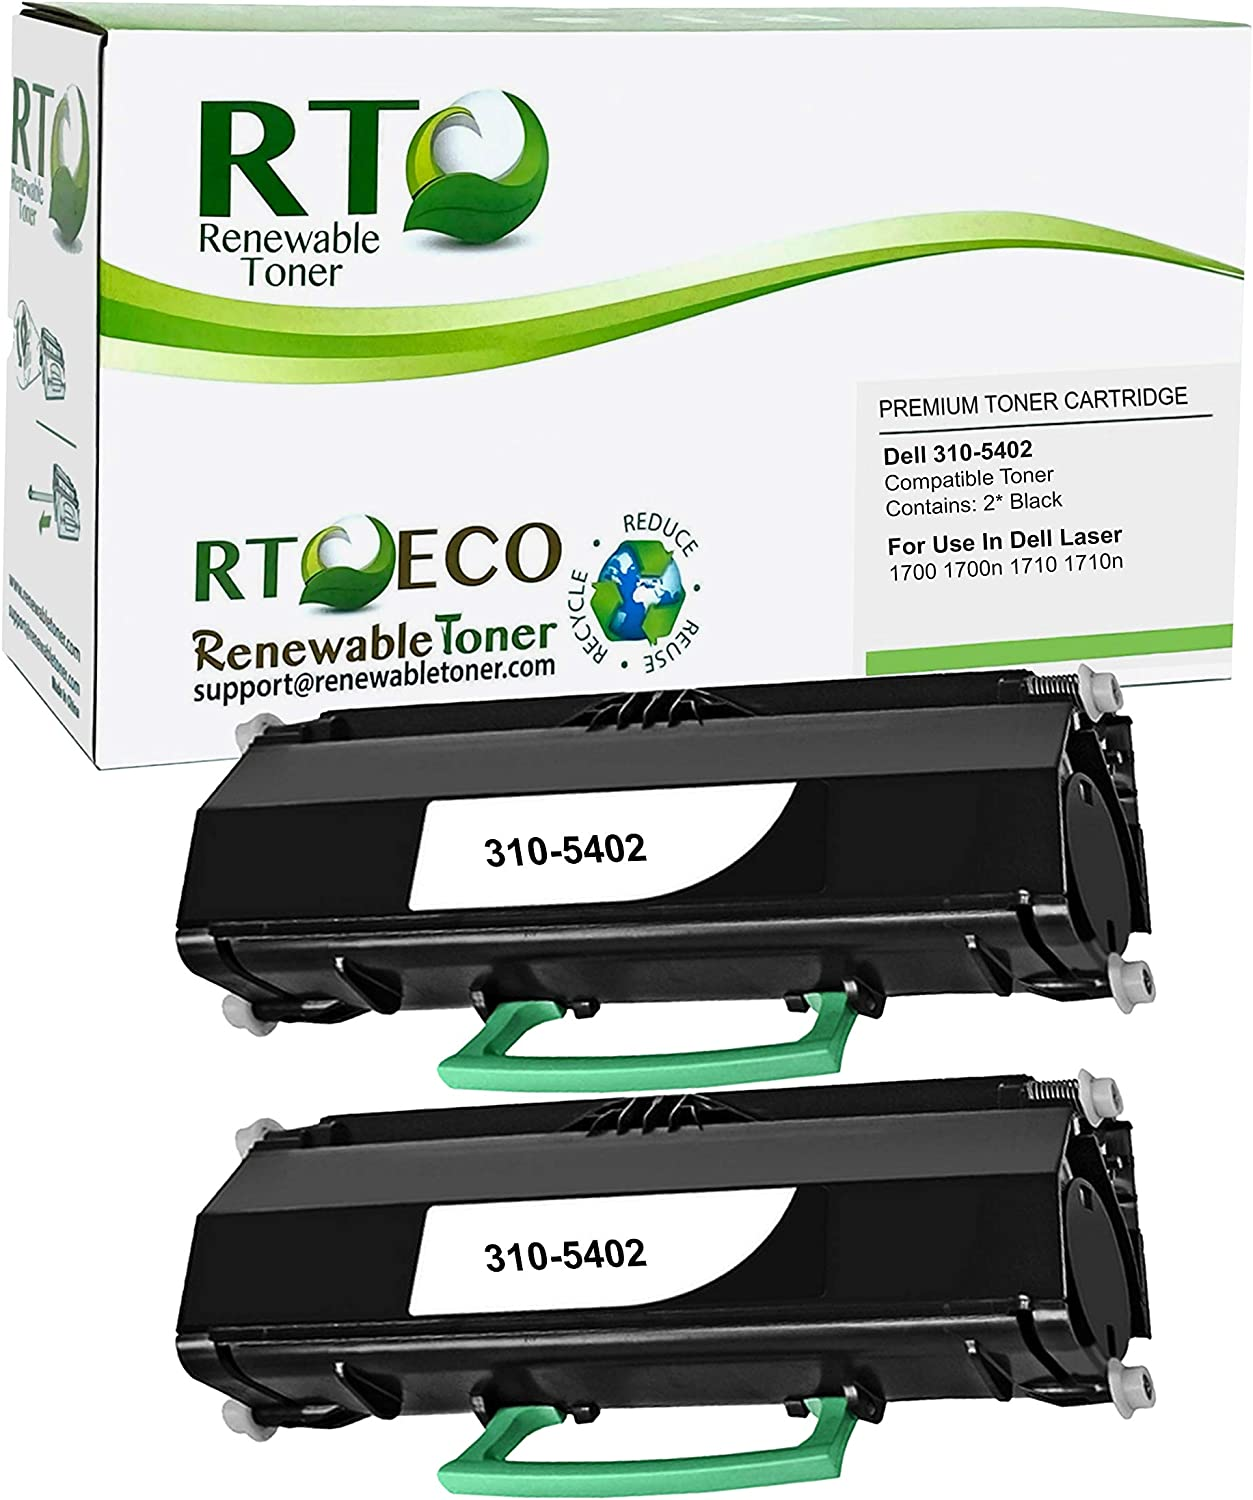 Renewable Toner Compatible Toner Cartridge Replacement for Dell 310-5402 Laser 1700 (Pack of 2 Black)